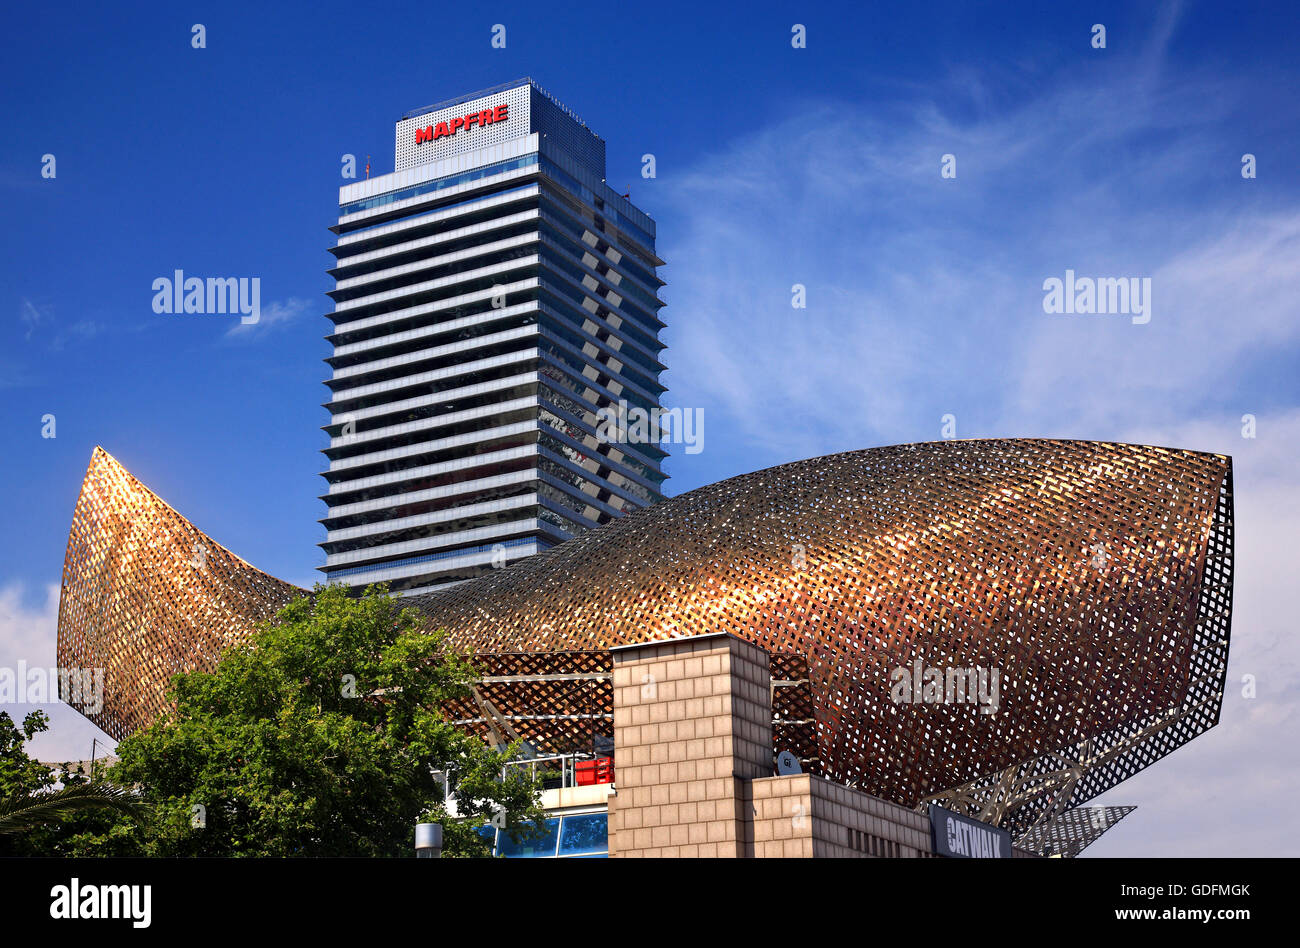 The 'Fish' ('Peix') by Frank Gehry, close to the Olympic port of Barcelona, Catalonia, Spain. - Stock Image